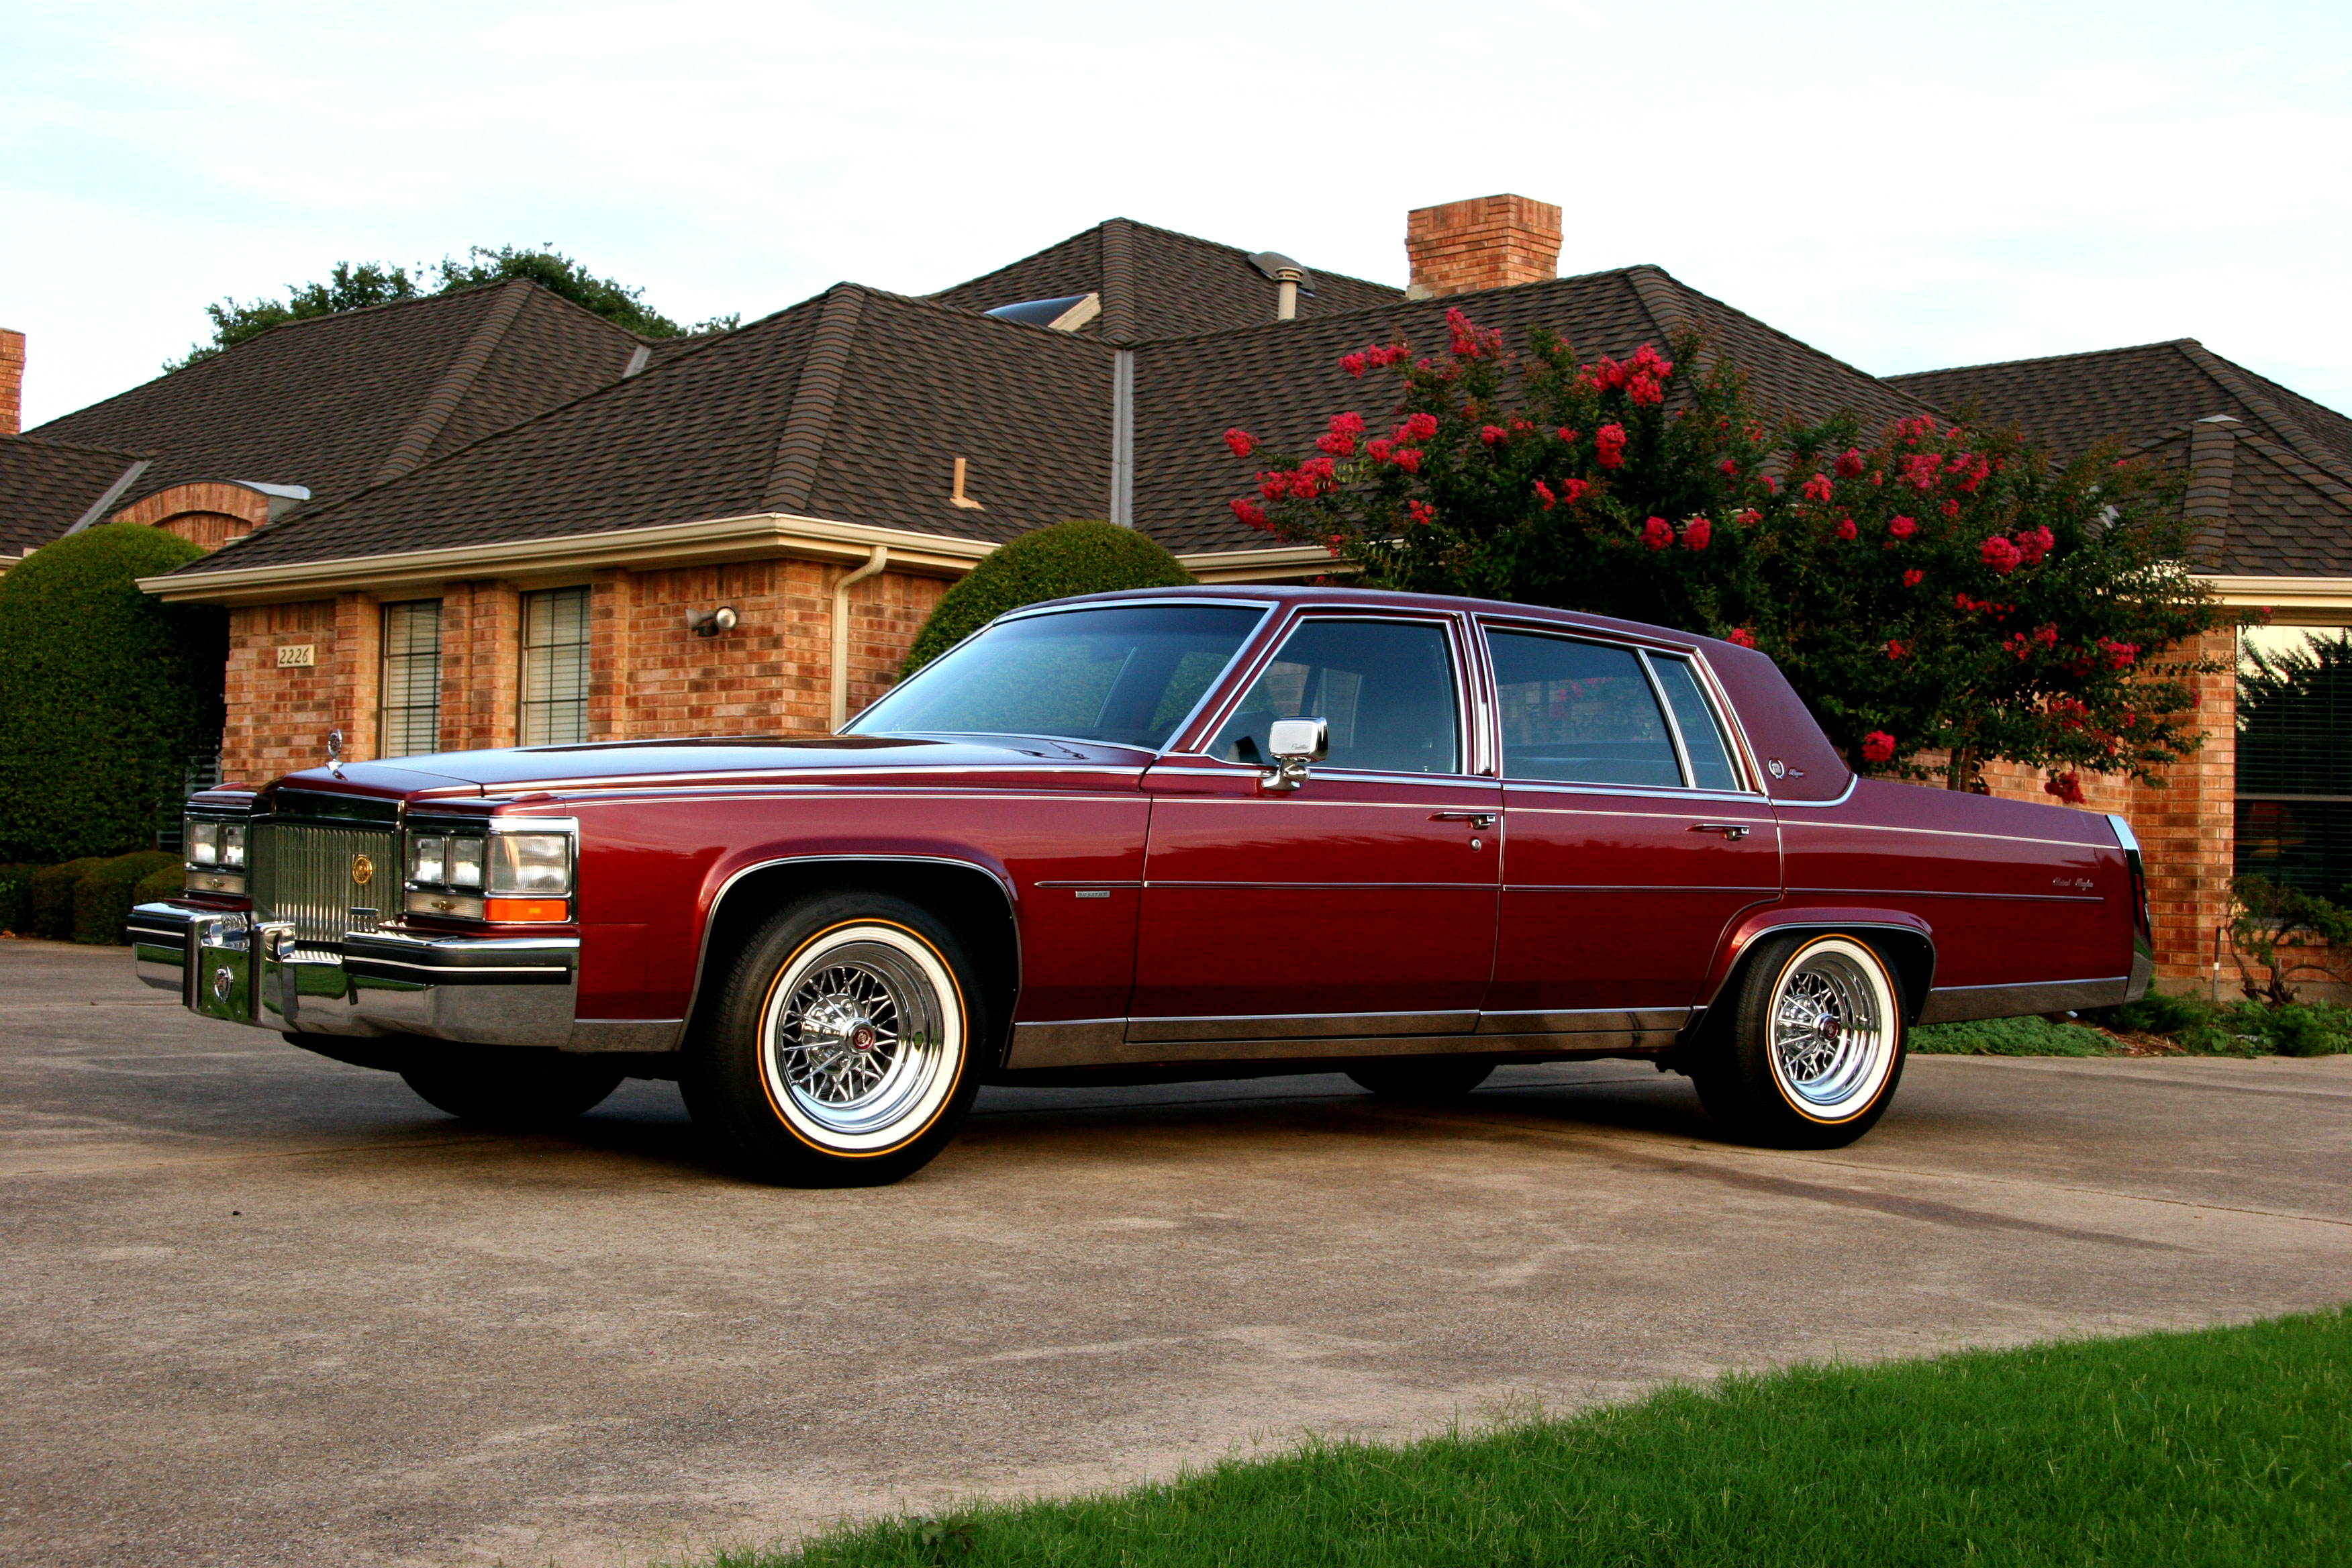 1980 Cadillac Fleetwood Brougham besides Cleaning Snow Off Roof also Mercedes Benz Viano Interior furthermore 8 Inch Round D ers For Range Vent Hoods moreover Paranasal Sinuses. on air duct roof